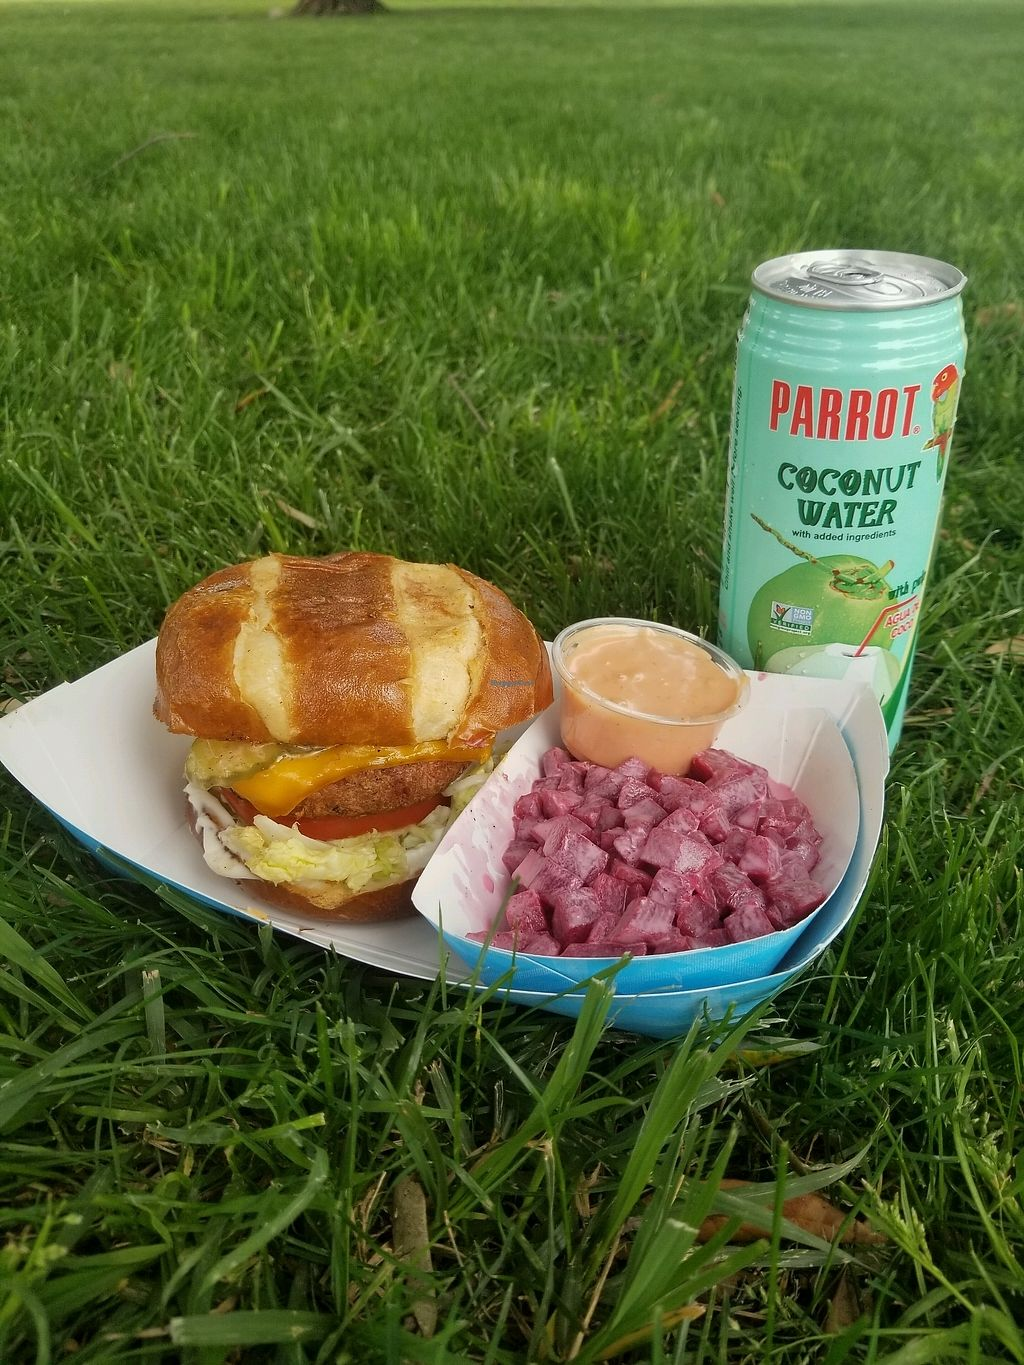 "Photo of Evolution Burger - Food Truck  by <a href=""/members/profile/SSIIXXAR"">SSIIXXAR</a> <br/>beyond burger, pretzel bun and beets and coconut water <br/> April 15, 2018  - <a href='/contact/abuse/image/117505/386540'>Report</a>"